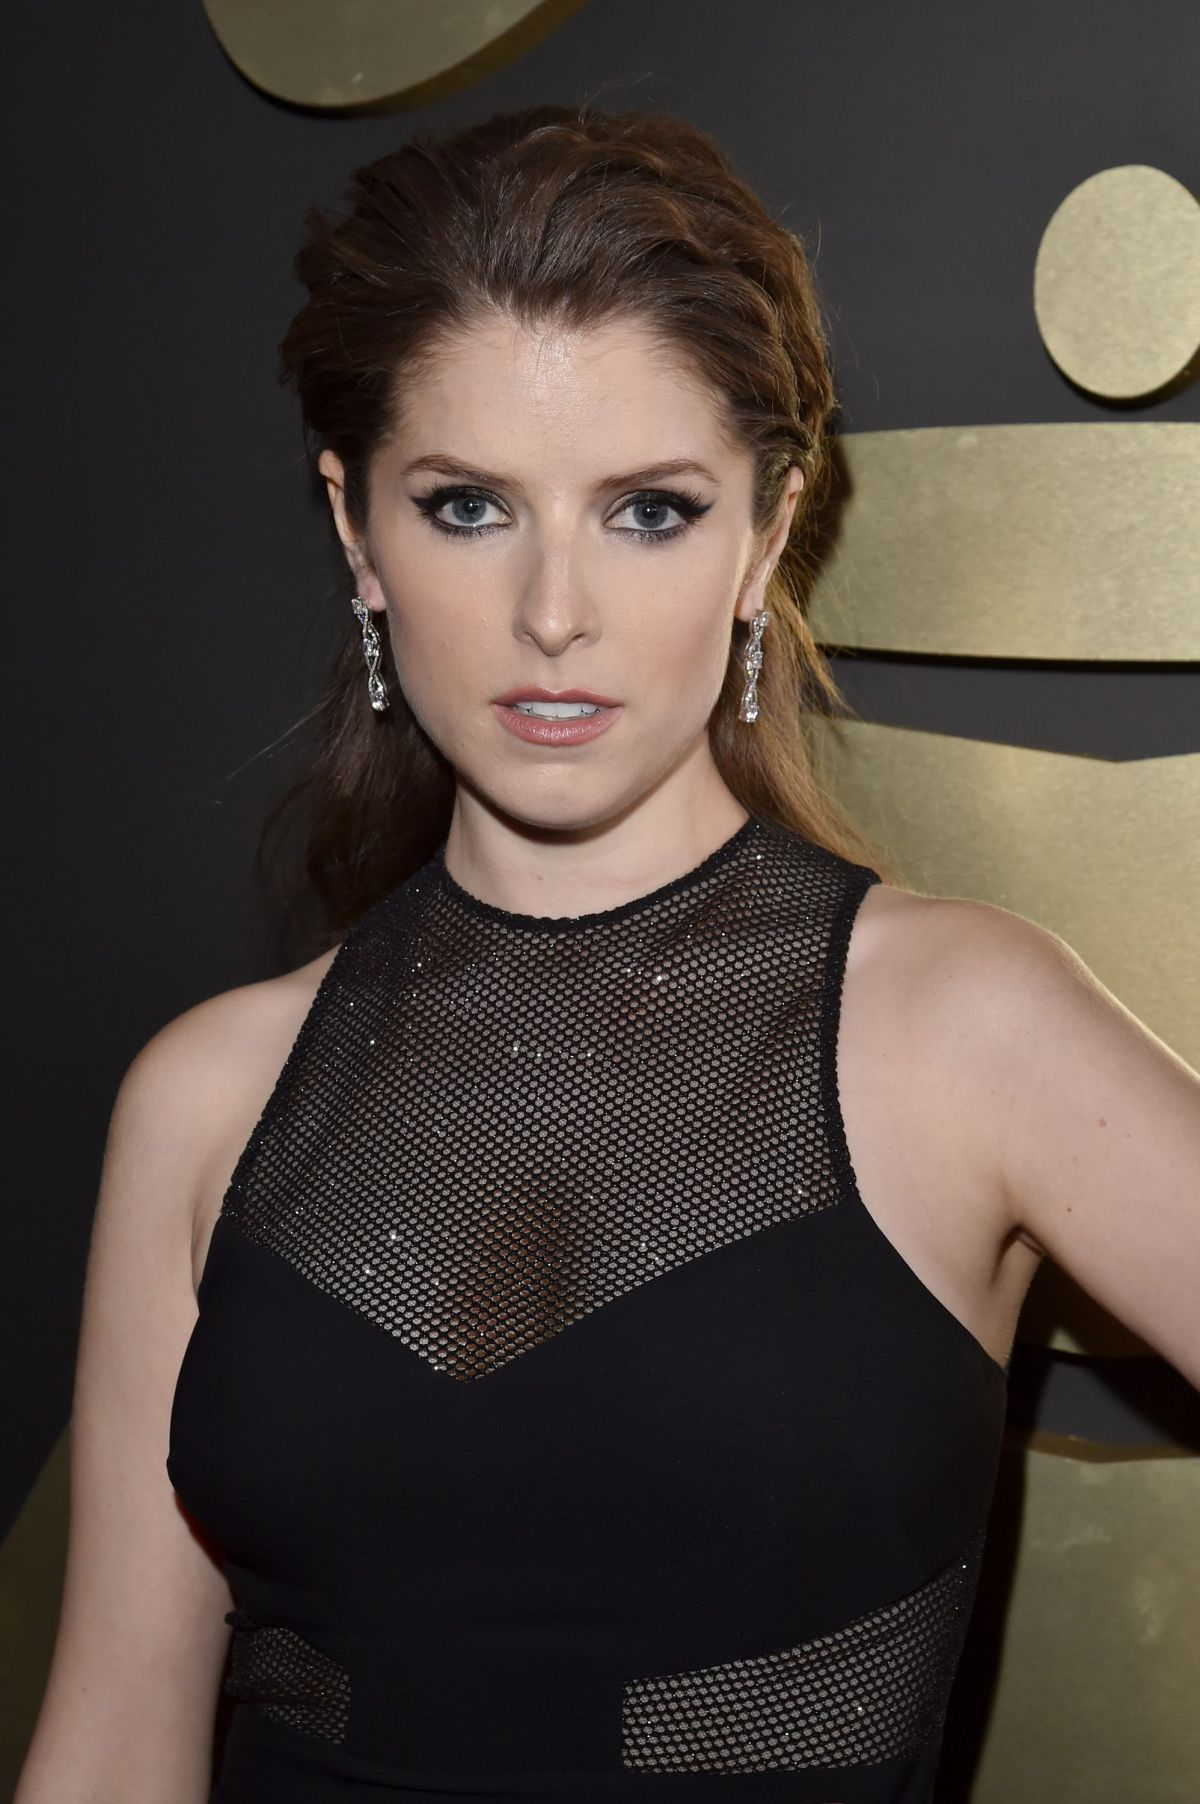 ANNA KENDRICK at Grammy Awards 2016 in Los Angeles 02/15/2016 ... Anna Kendrick